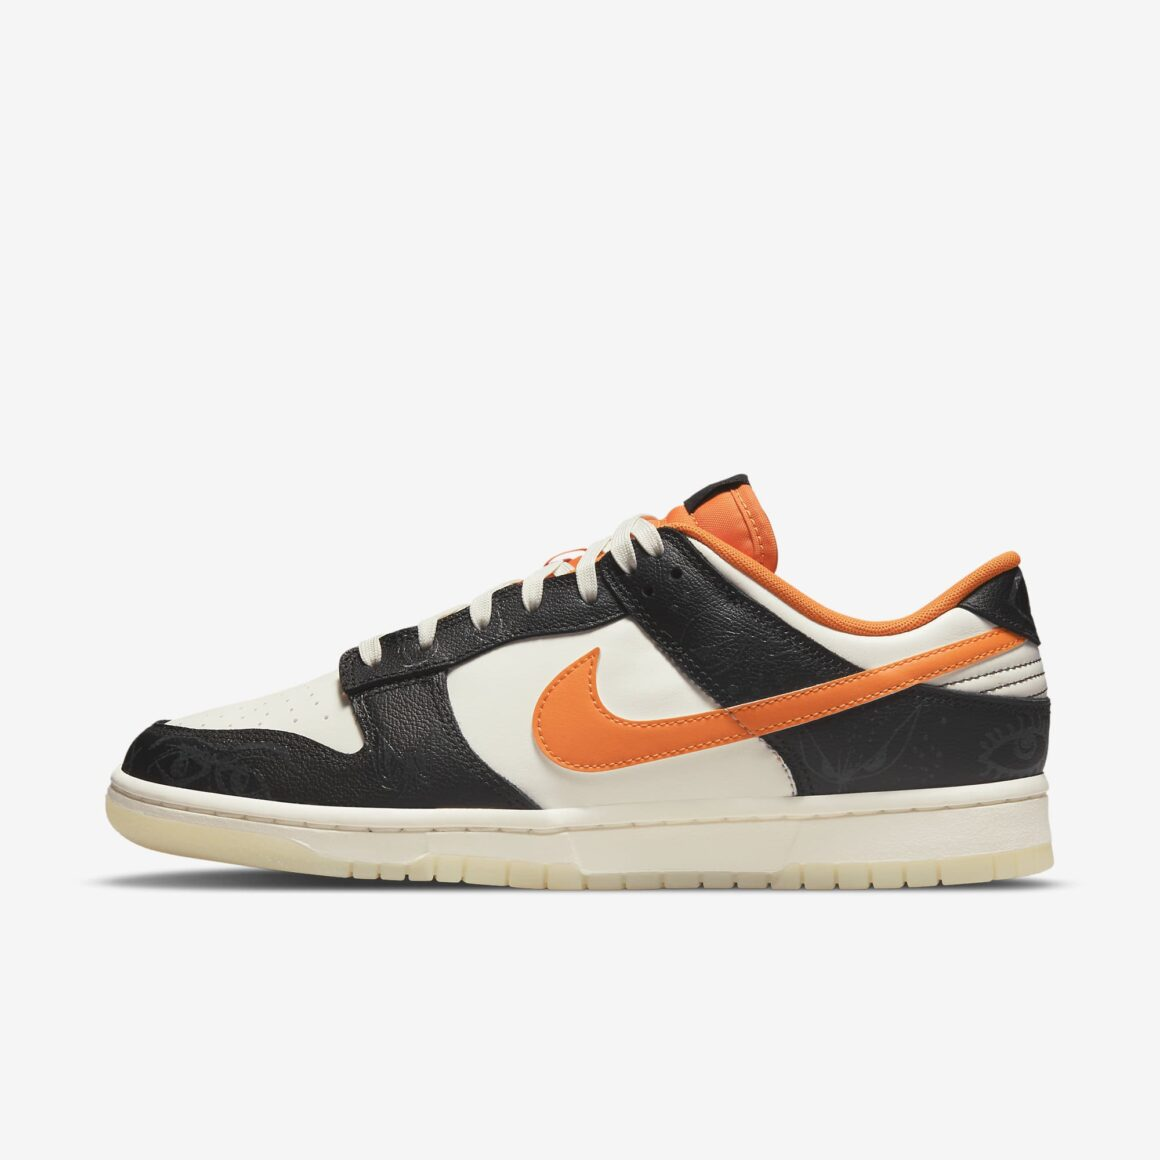 Nike Dunk Low PRM Halloween DD3357-100 Lateral